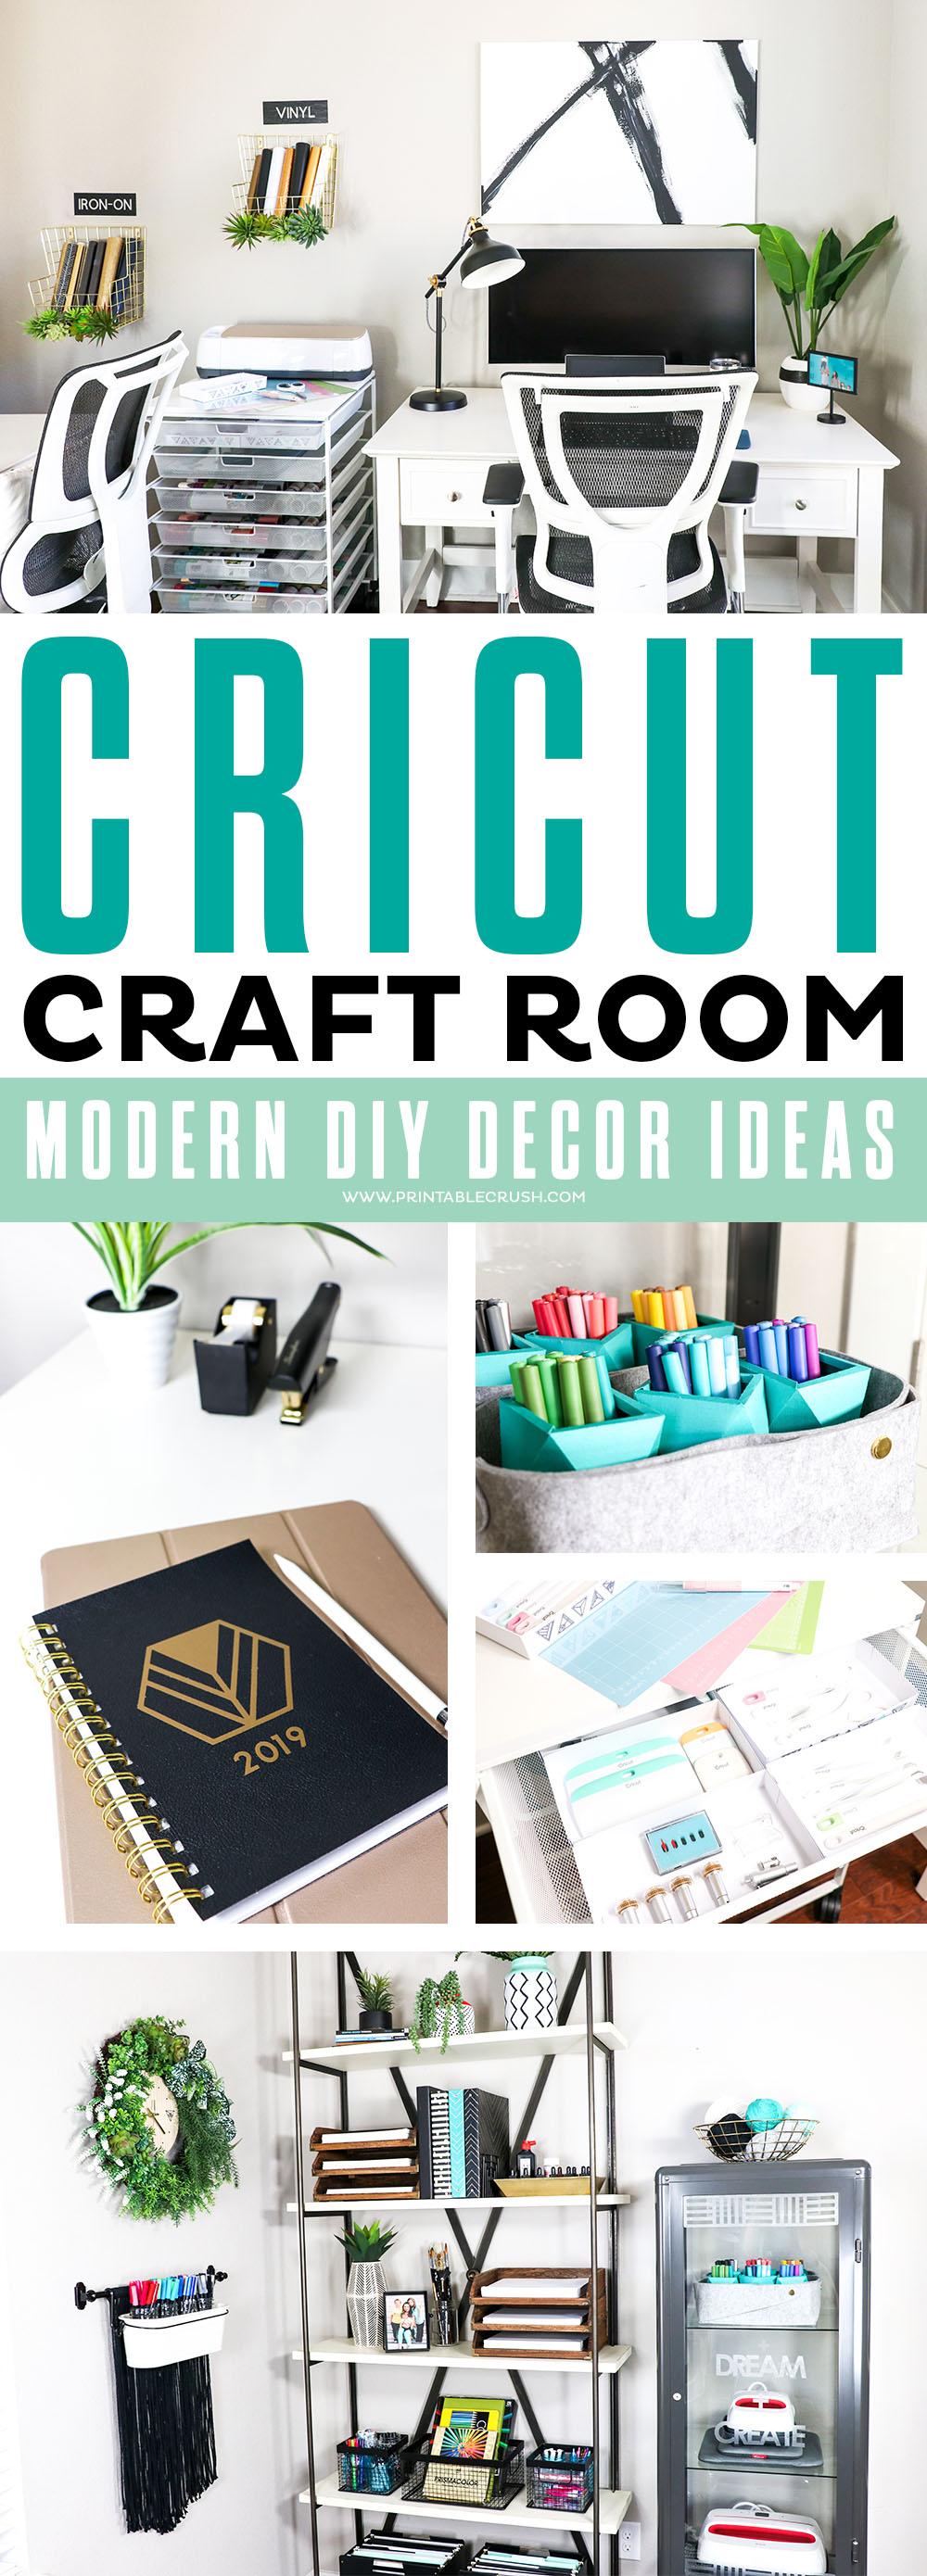 Check out these beautiful Home Office and Cricut Craft Room DIY Decor Ideas! #cricutmade #sayitwithcricut #cricutcraftroom #craftroom #homeoffice #DIYhomedecor #diydecor